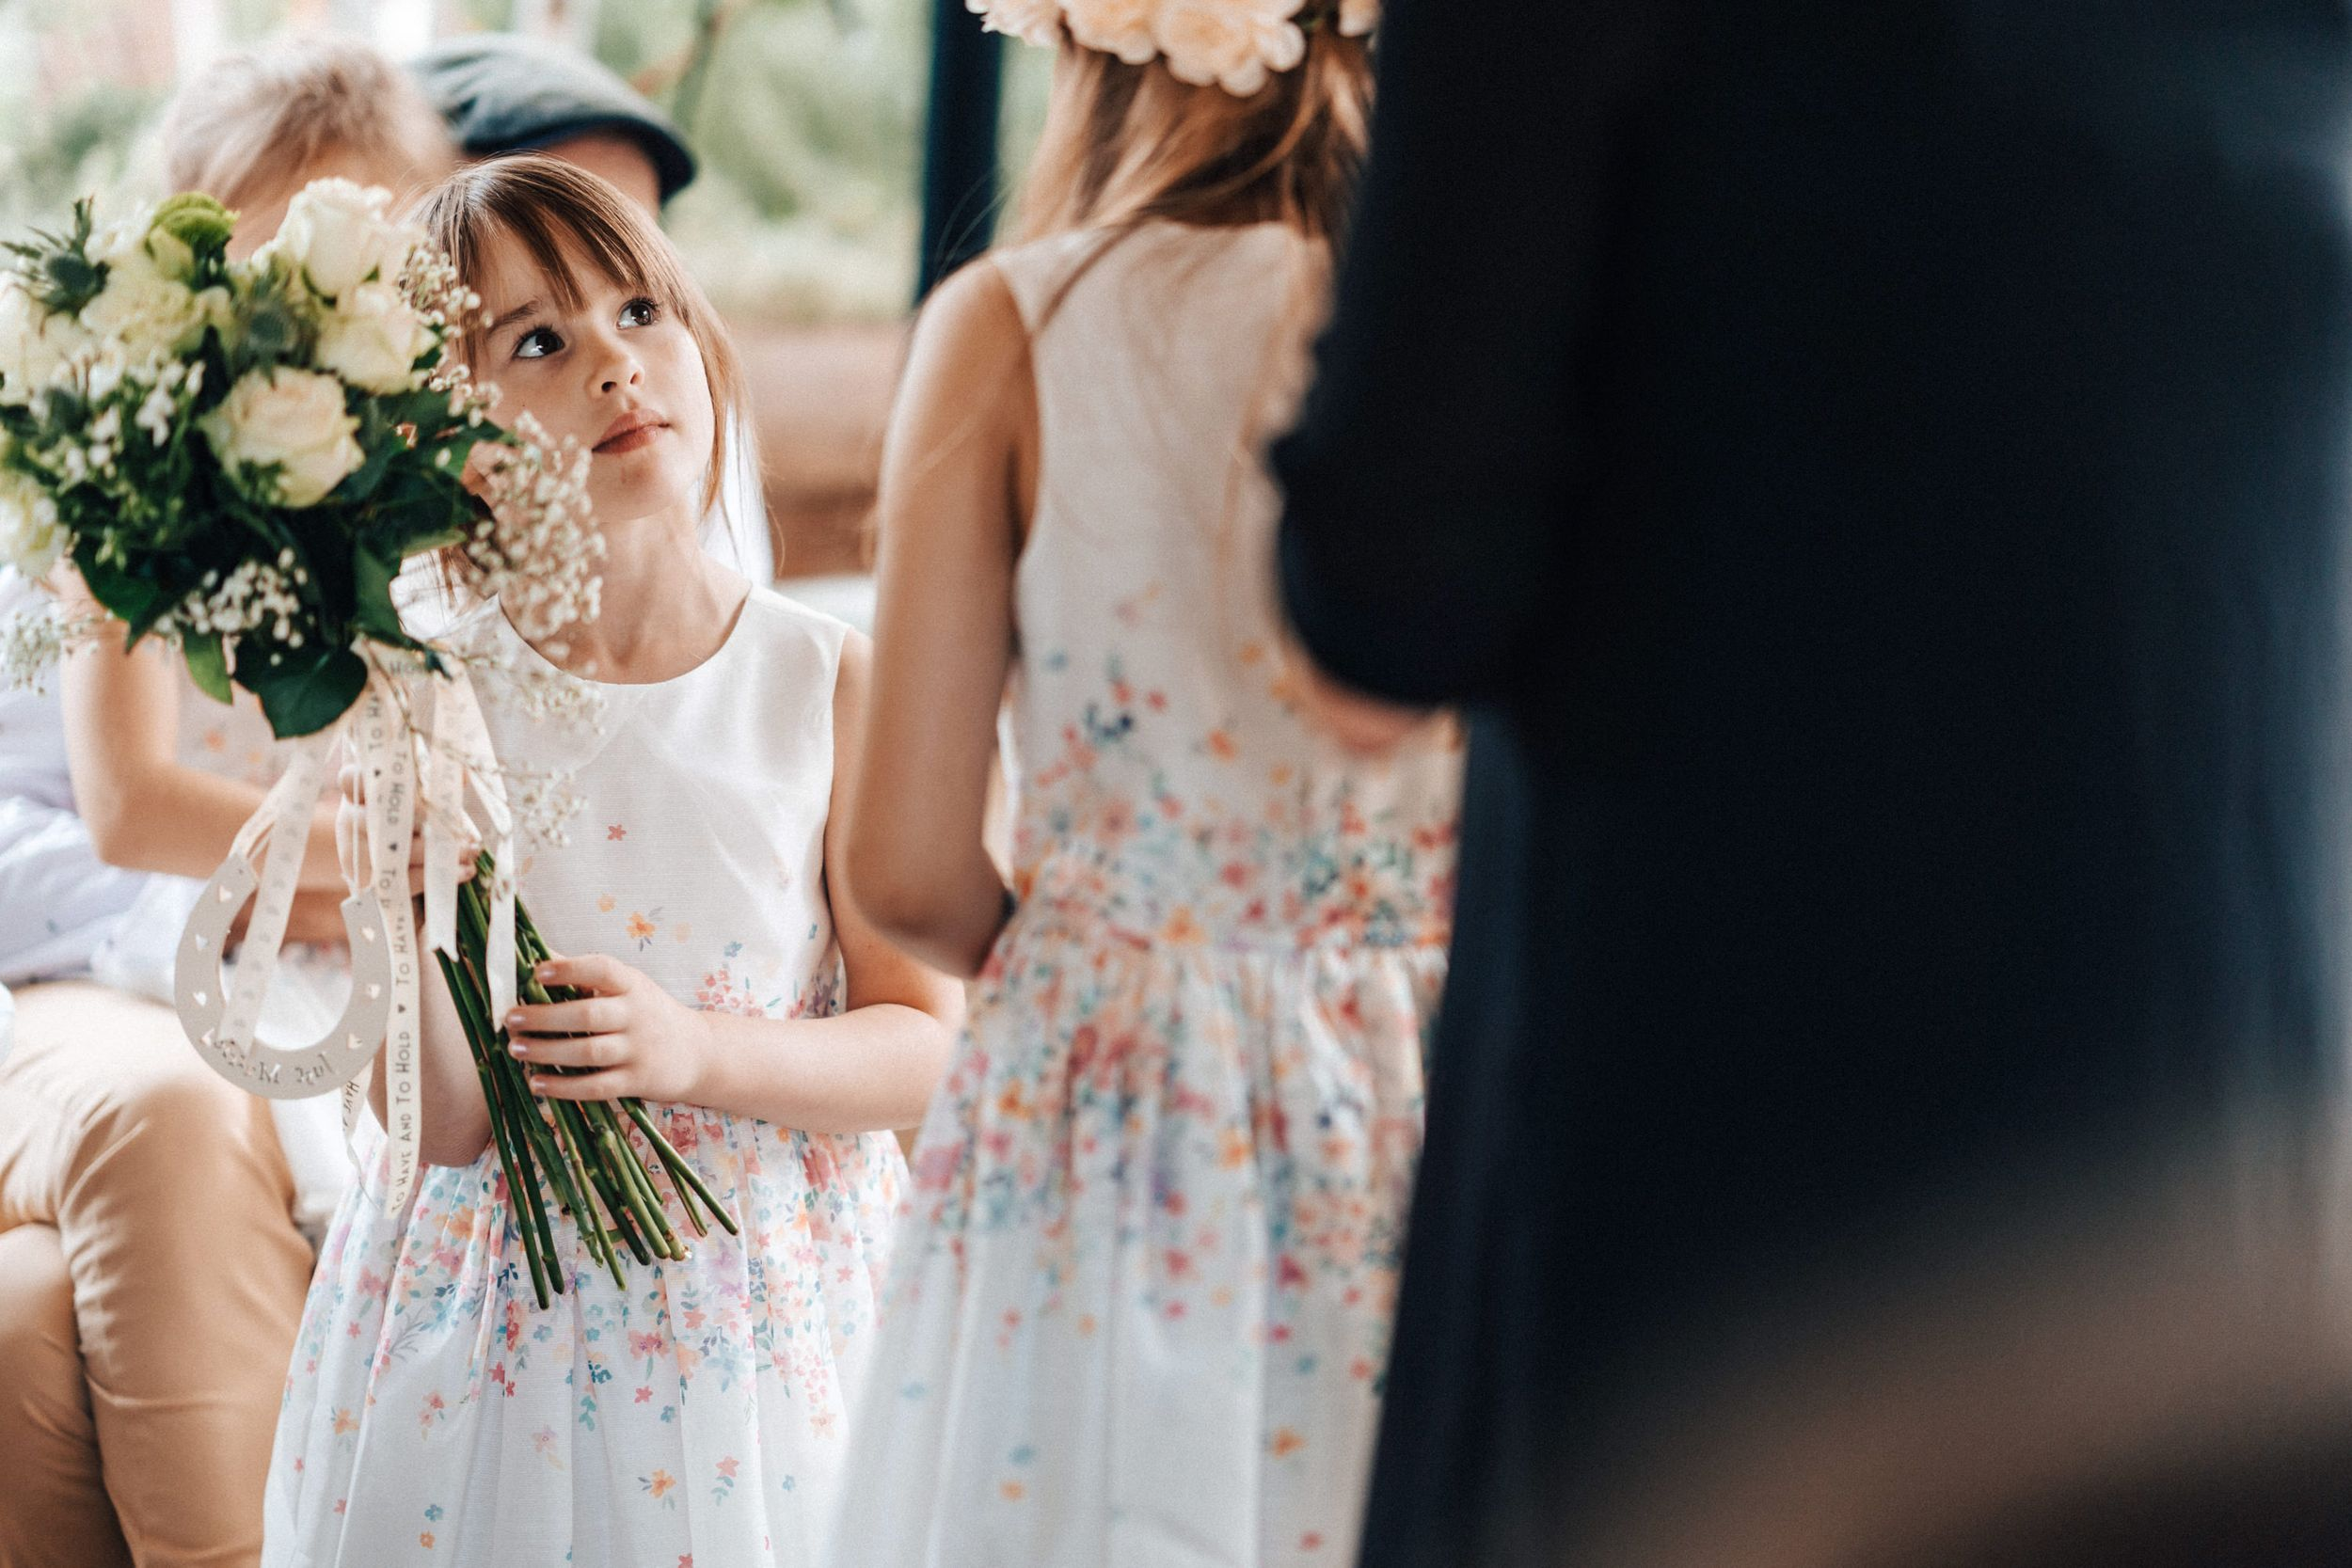 Reportage photograph taken at 131 Cheltenham a flower girl having fun holding her flowers